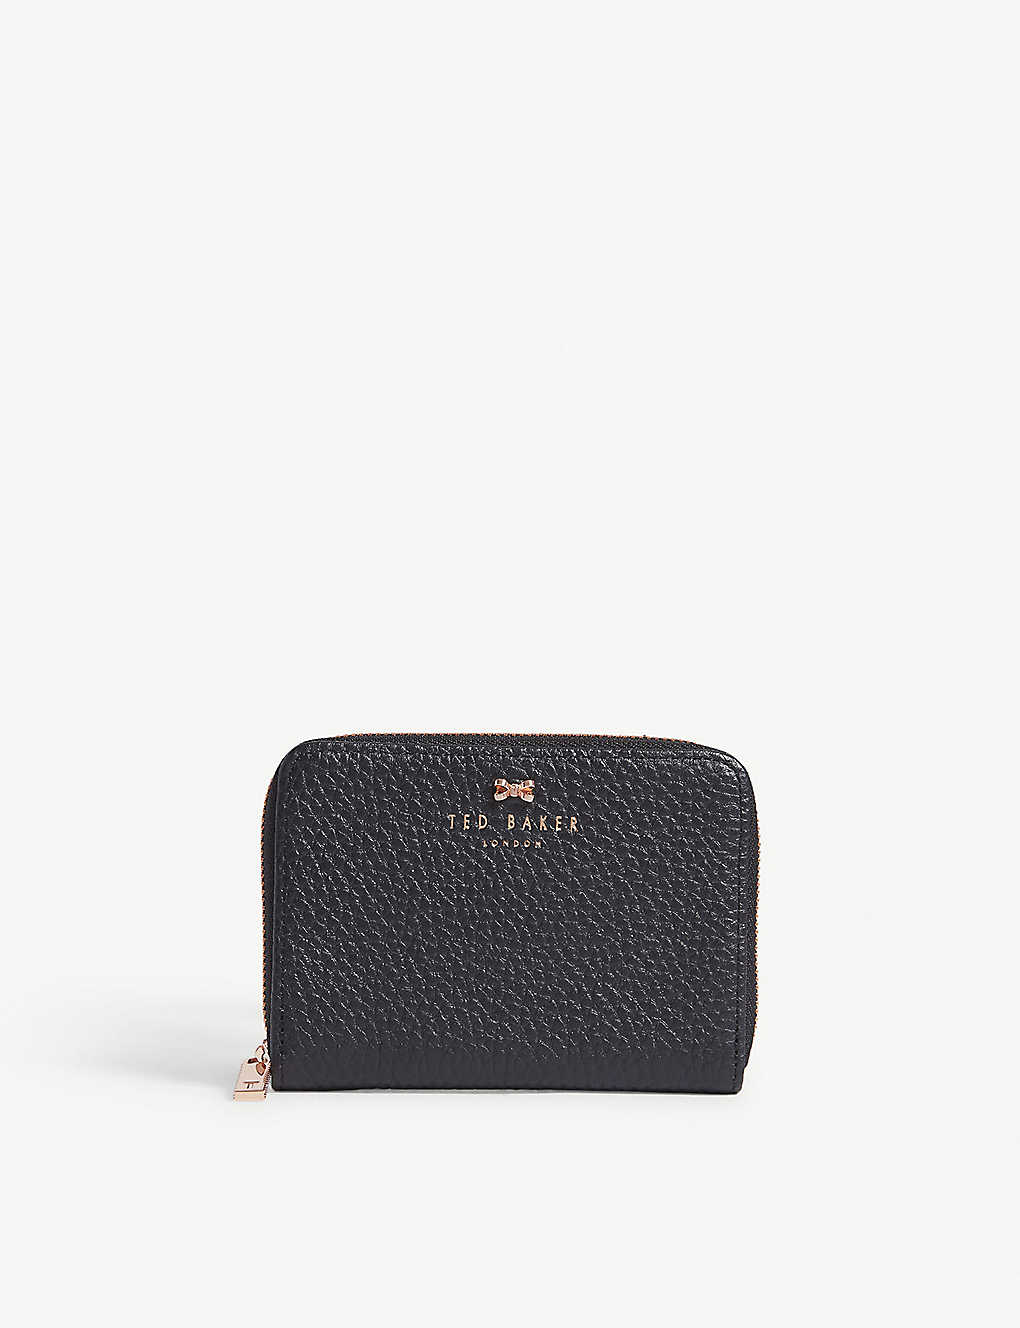 eaccd3c4a1d TED BAKER - Plie textured leather small zip purse | Selfridges.com